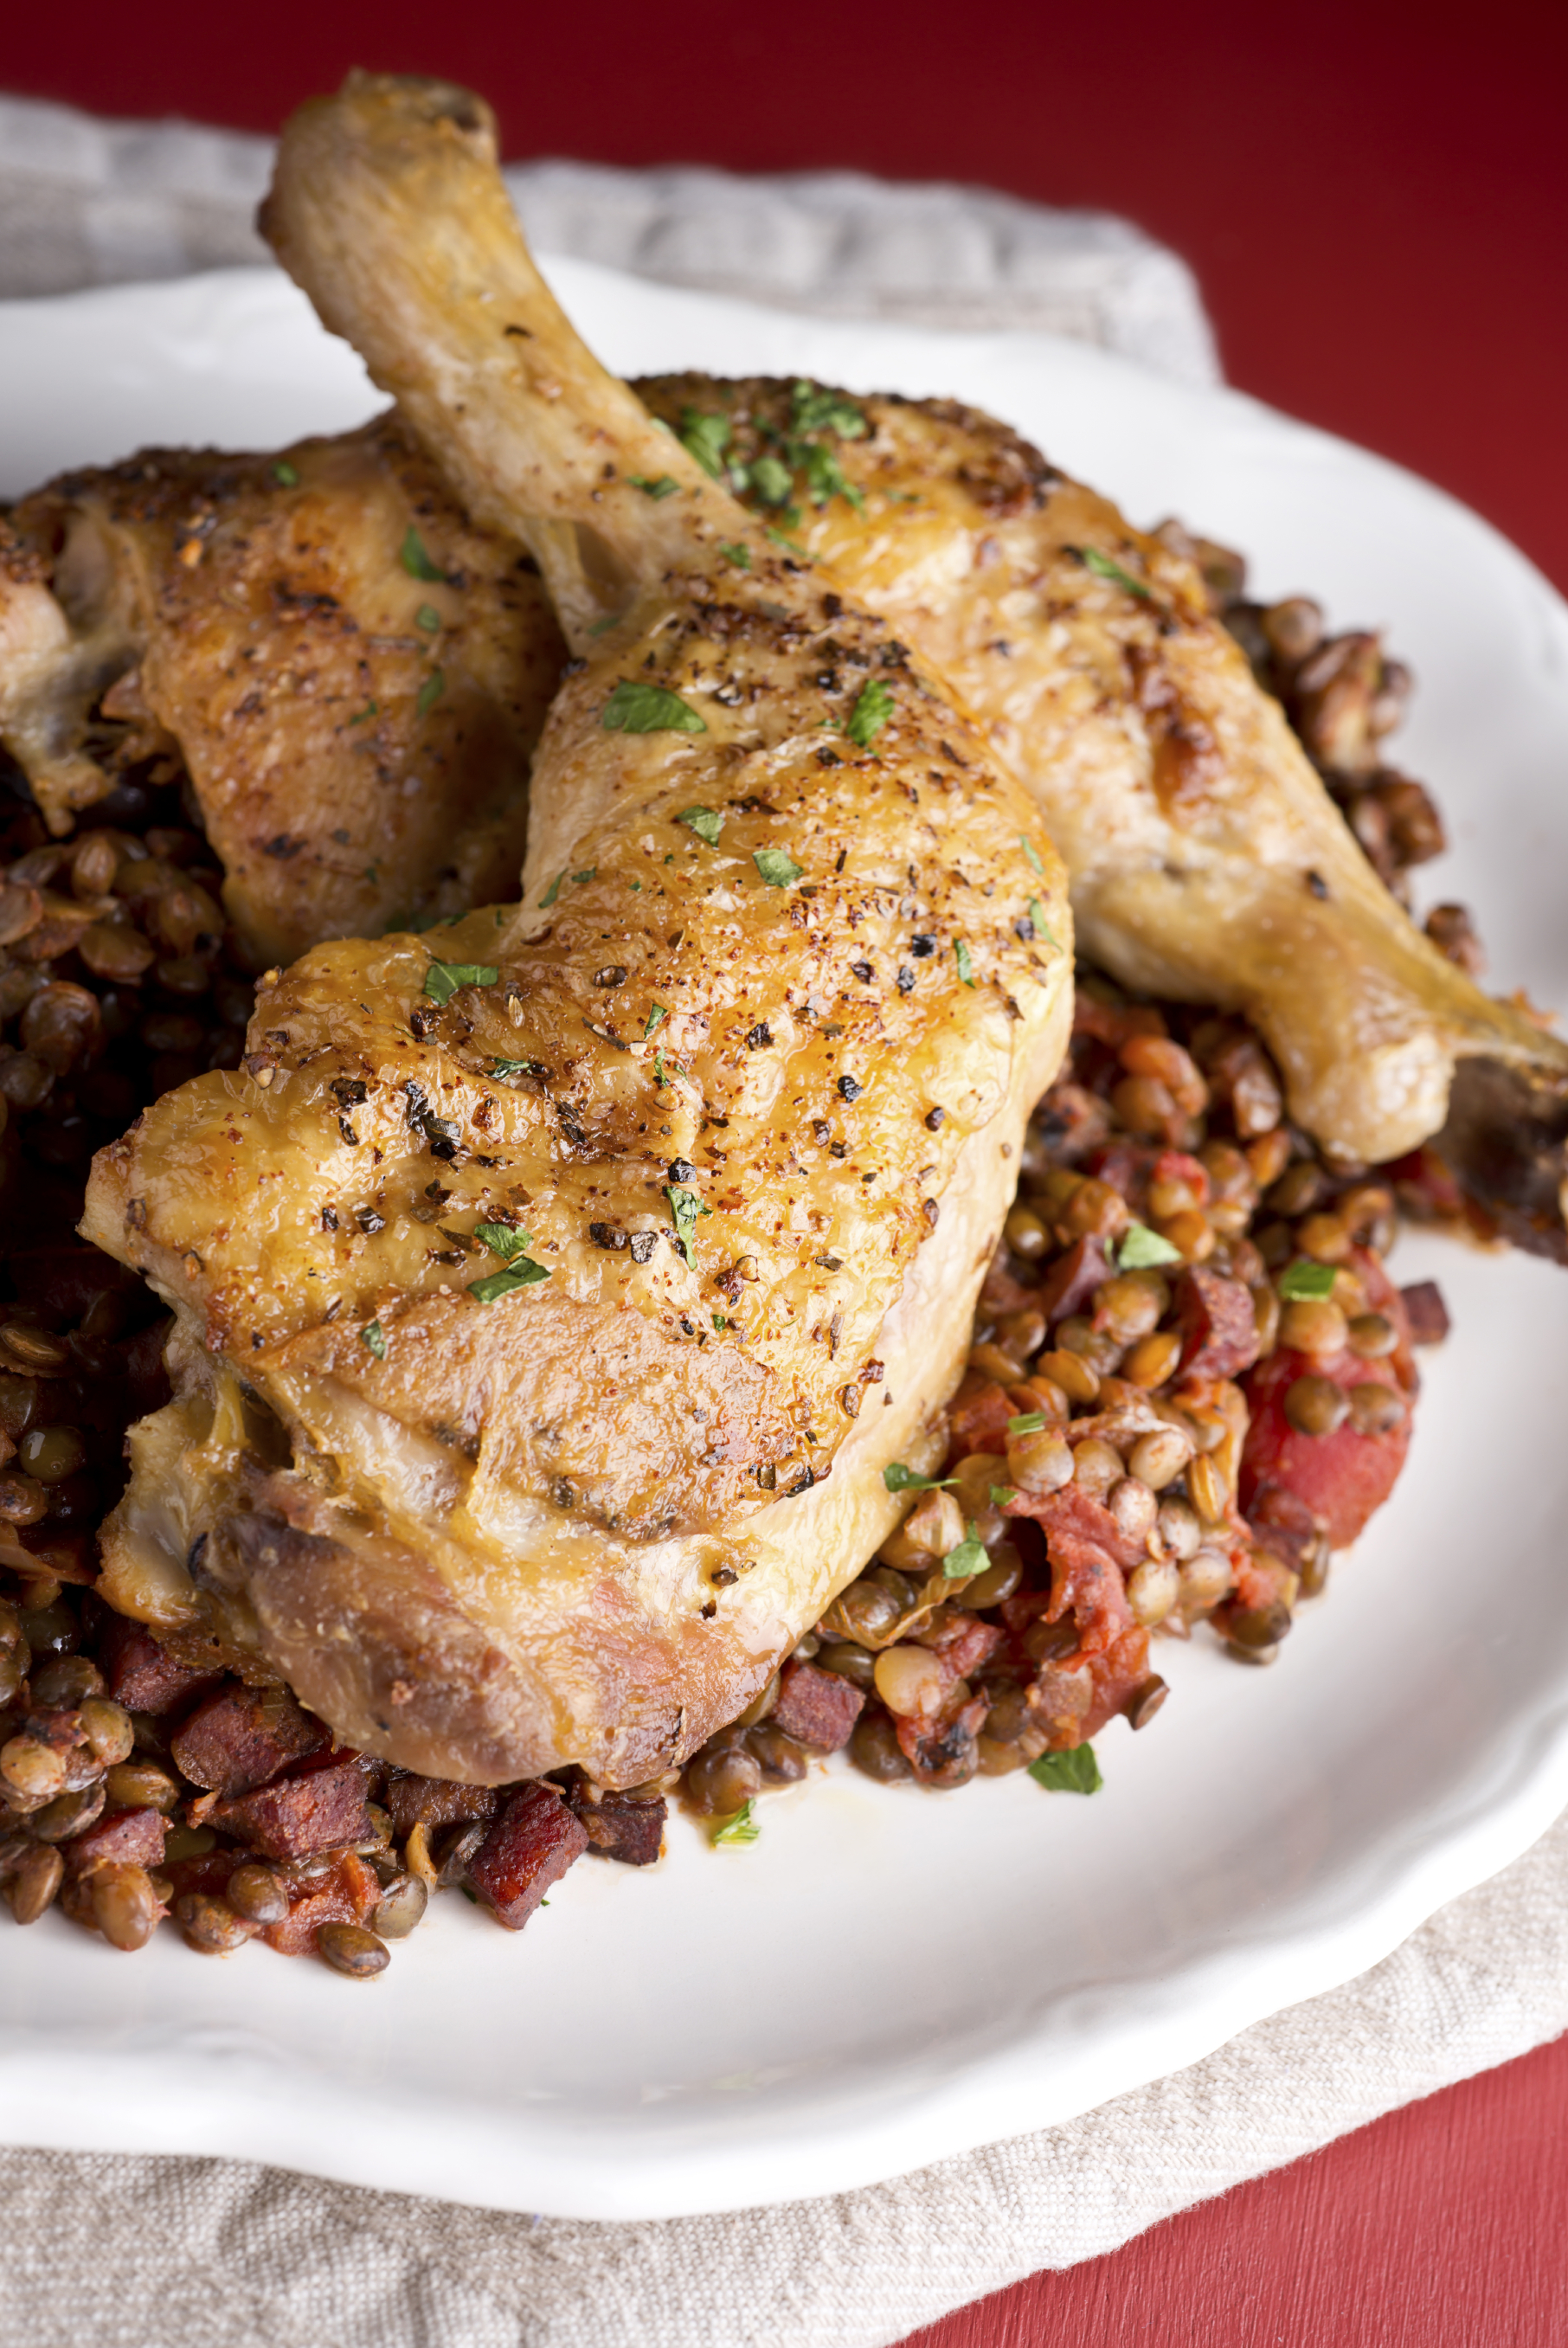 iStock_000037288032_Large - chicken and lentils.jpg